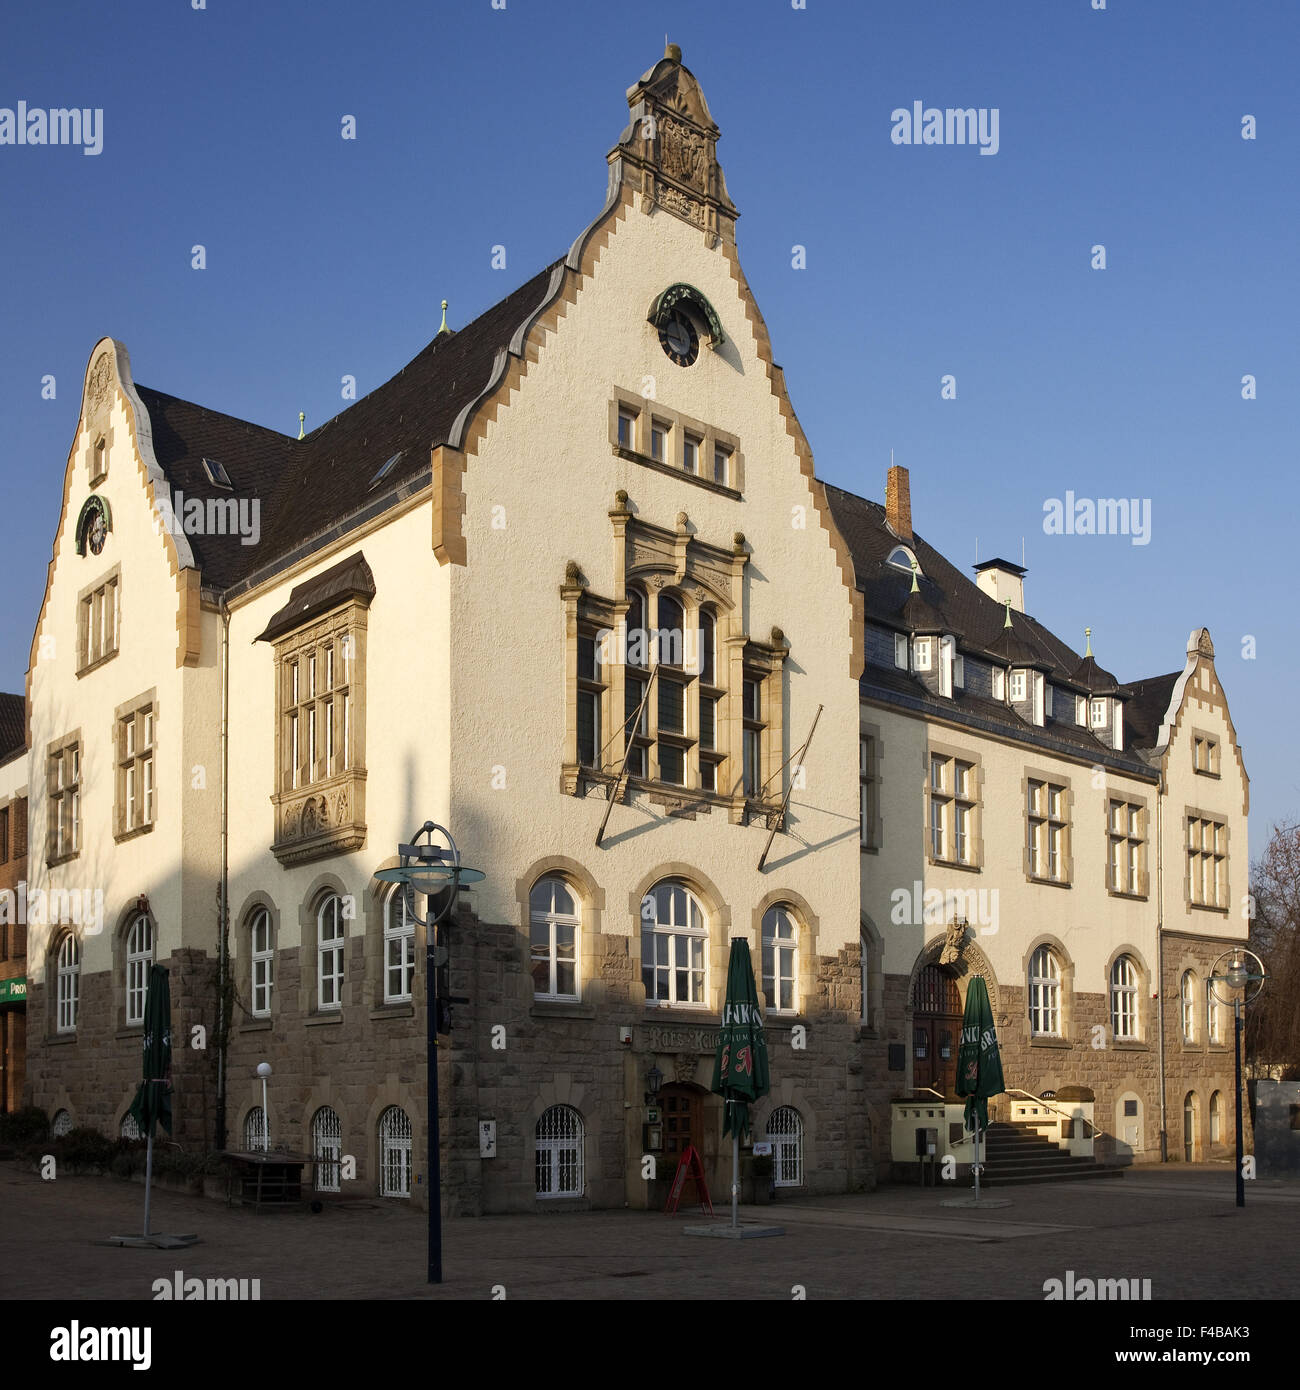 Official House Applerbeck, Dortmund, Germany. - Stock Image